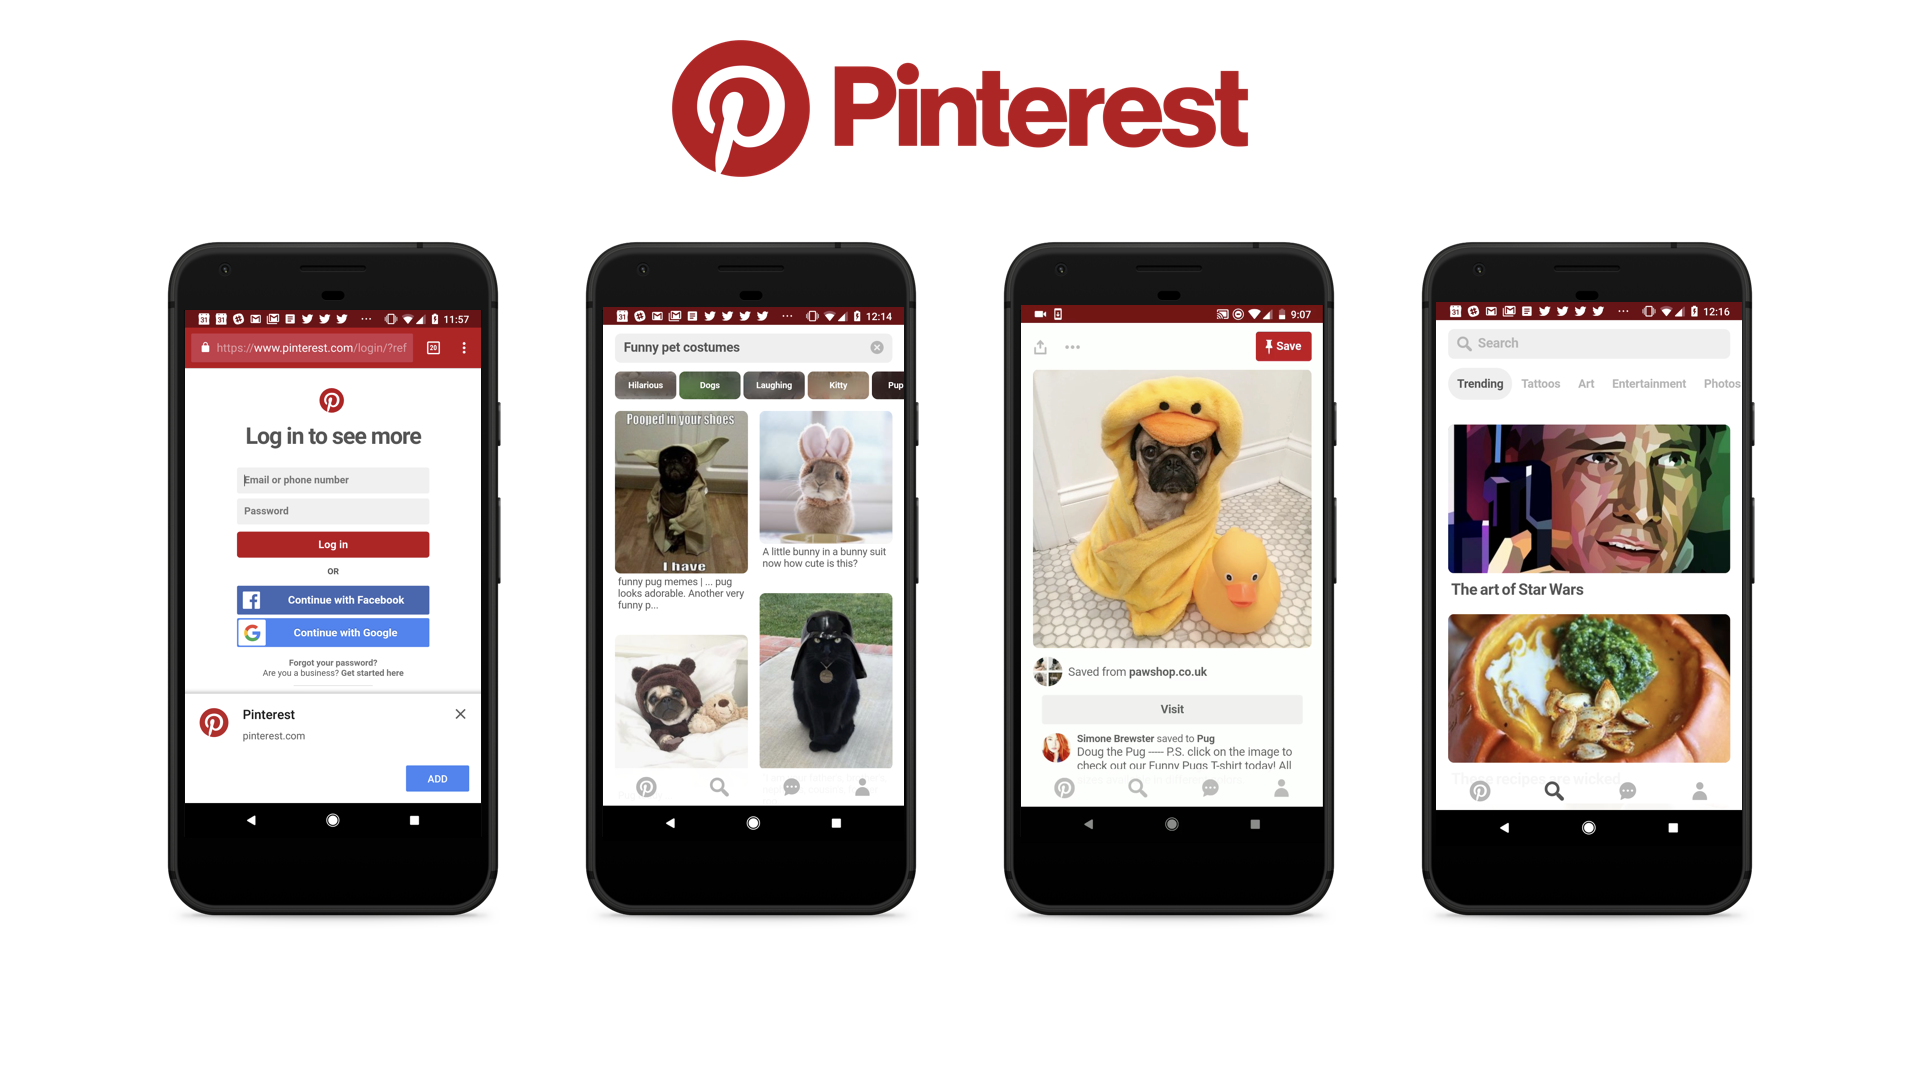 With a focus on international growth, Pinterest started their new mobile web experience from the ground up as a PWA.